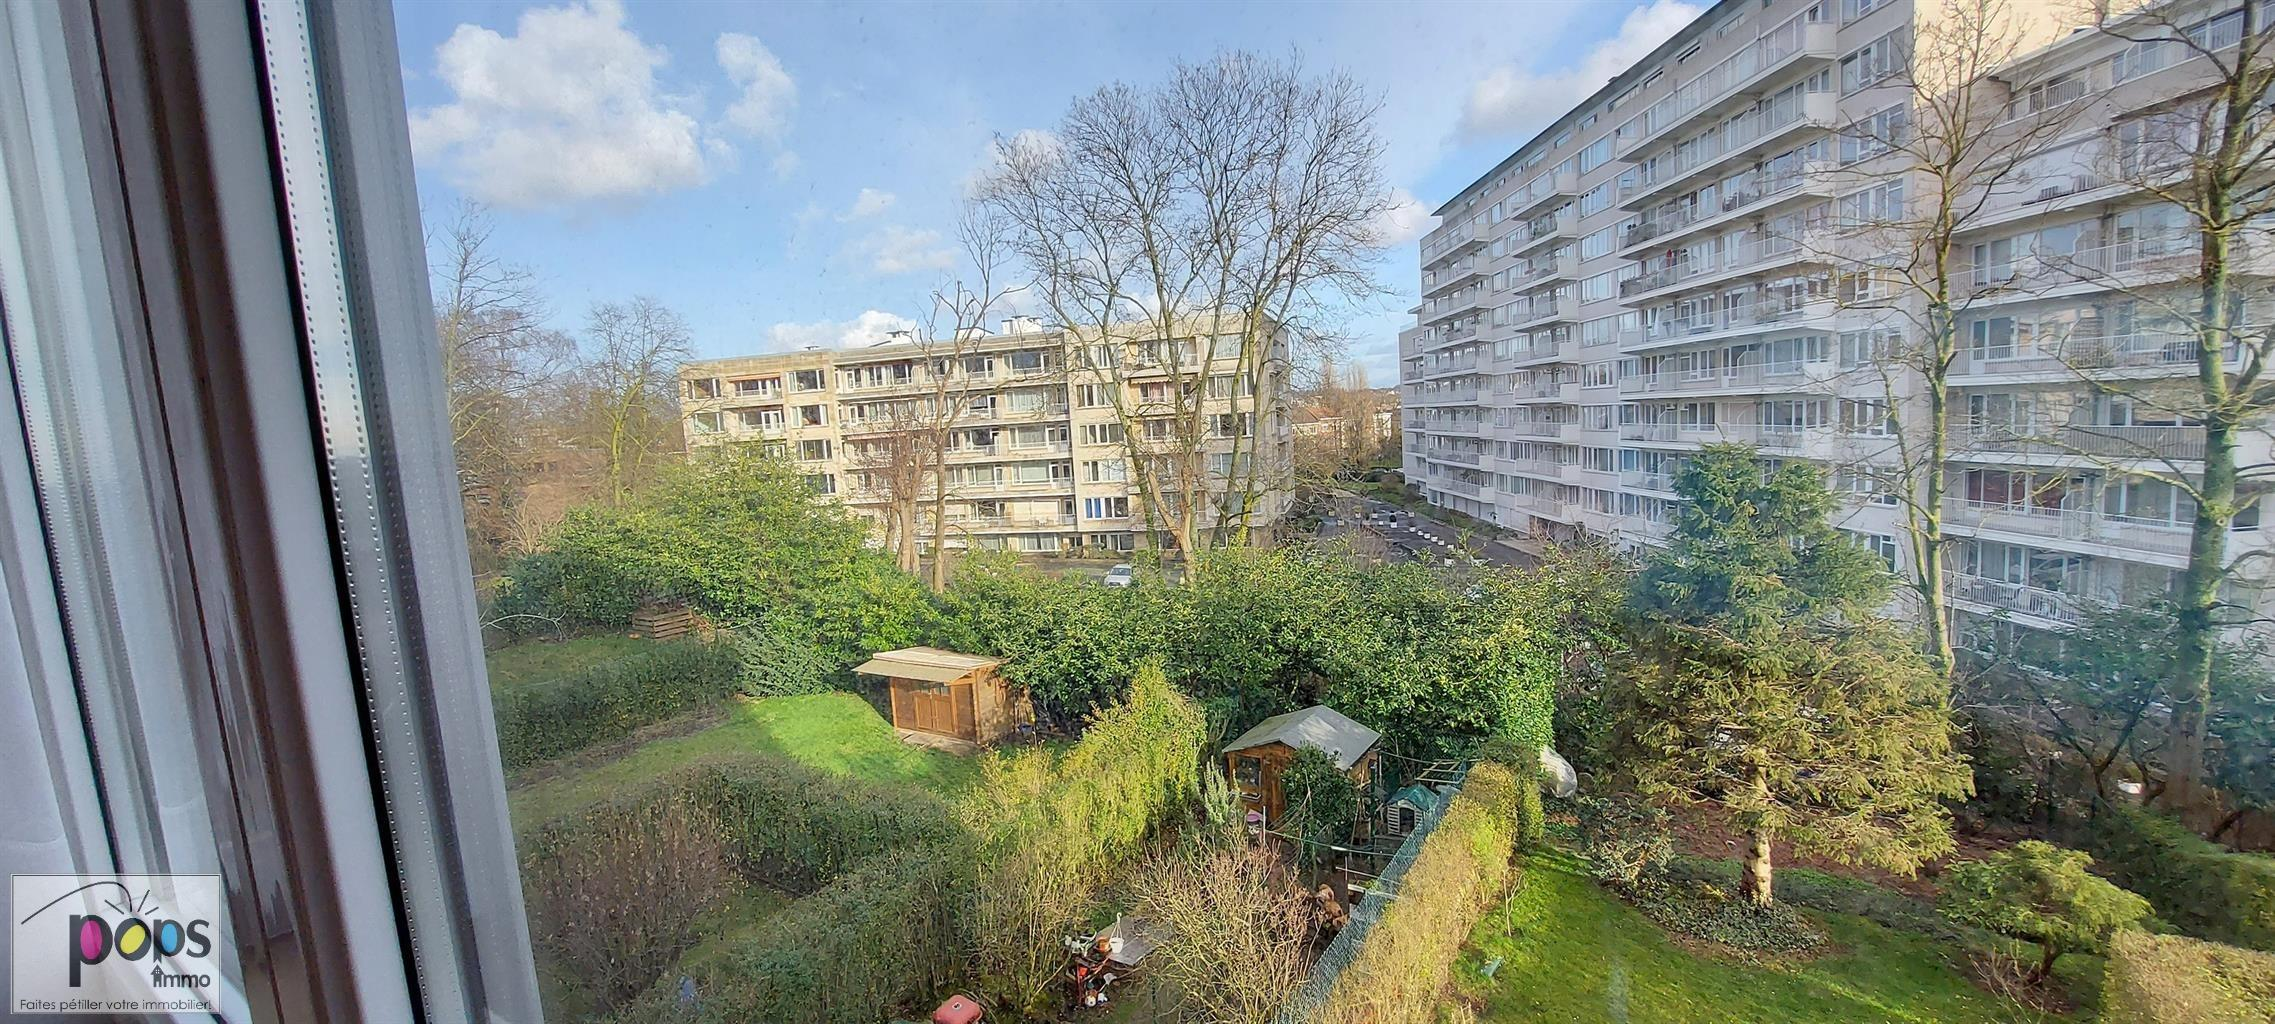 Appartement - Uccle - #4311863-17